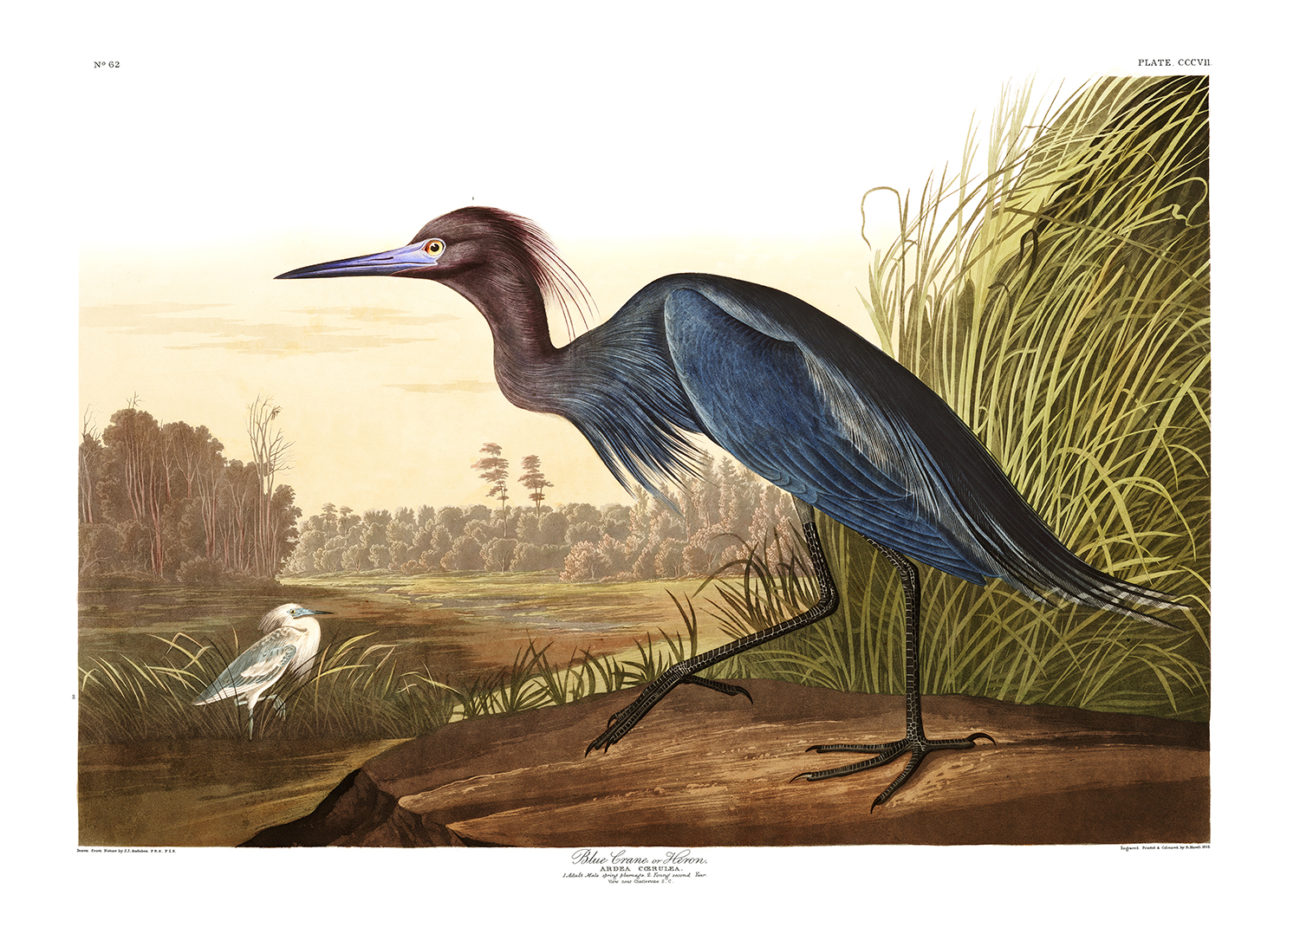 Plate 307 - Blue Crane or Heron